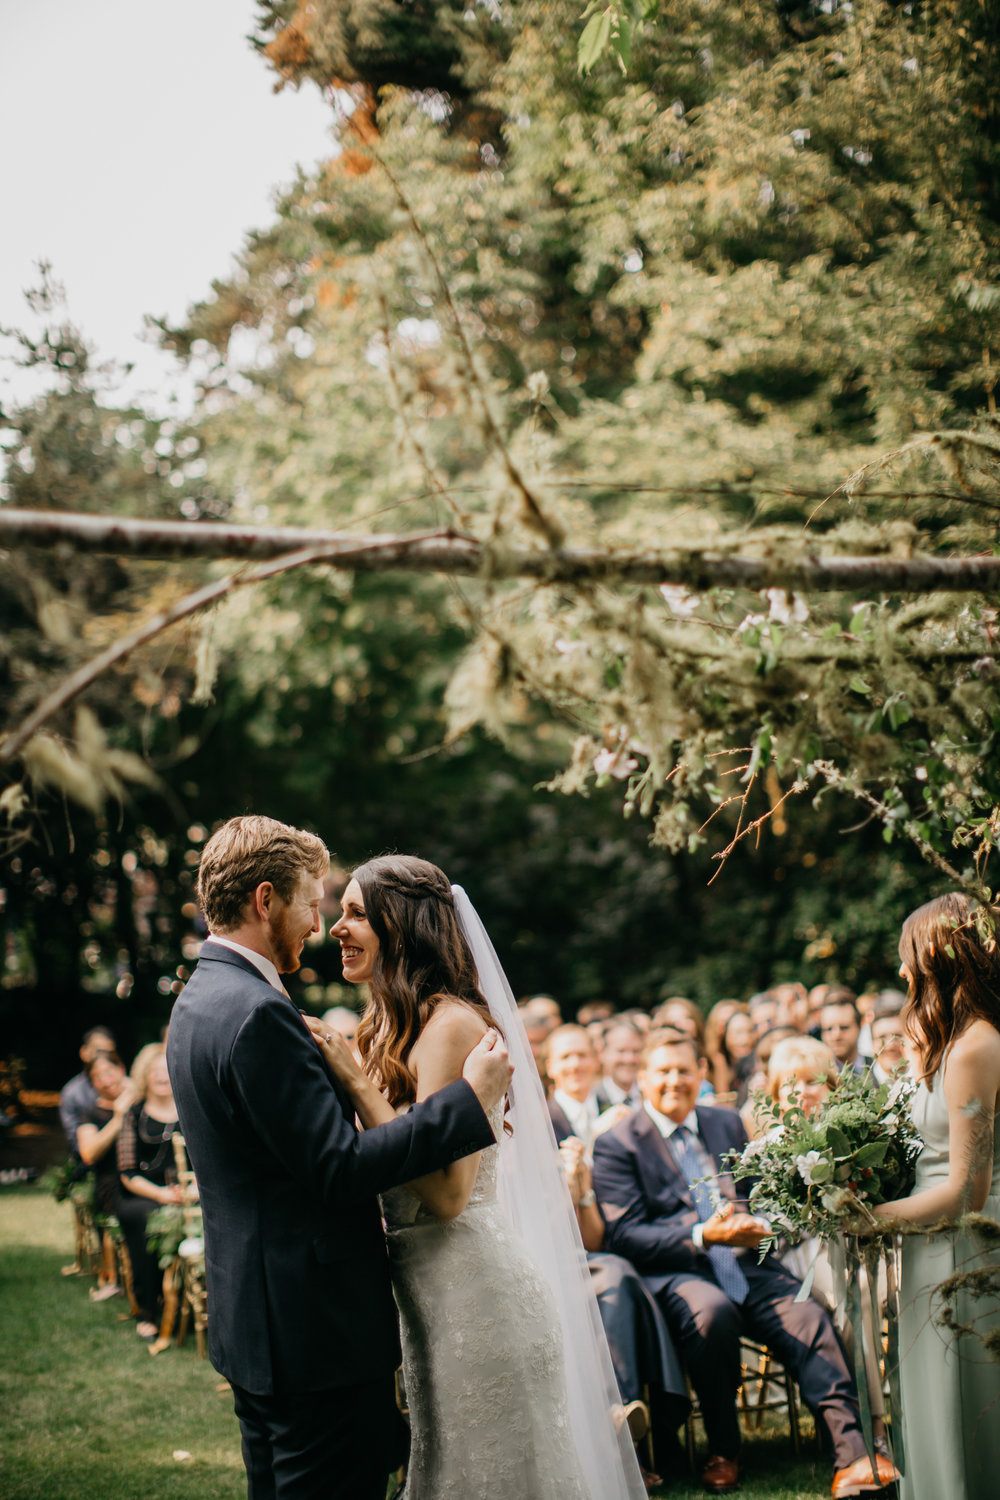 Max&SamPhoto_Seattle Wedding Photographer_Bellevue Robinswood House_091.jpg